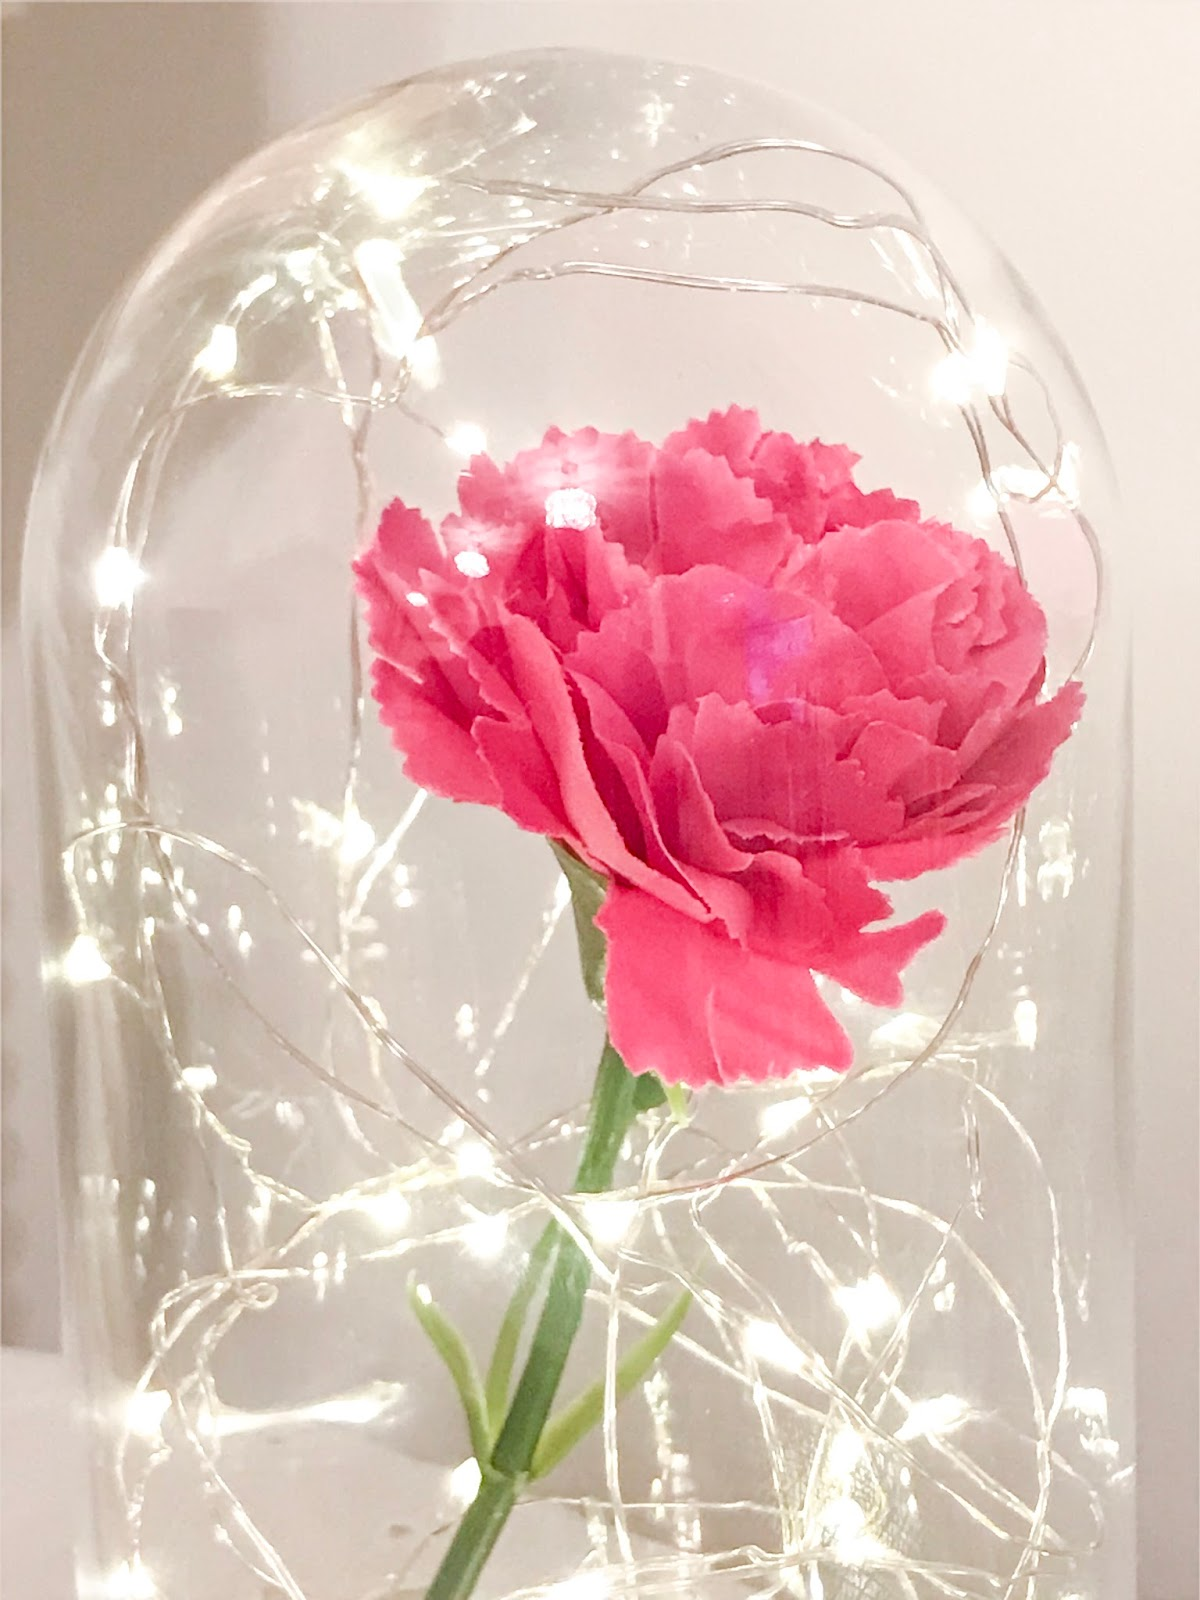 How To Make Diy Beauty The Beast Inspired Bell Jar For Under 10